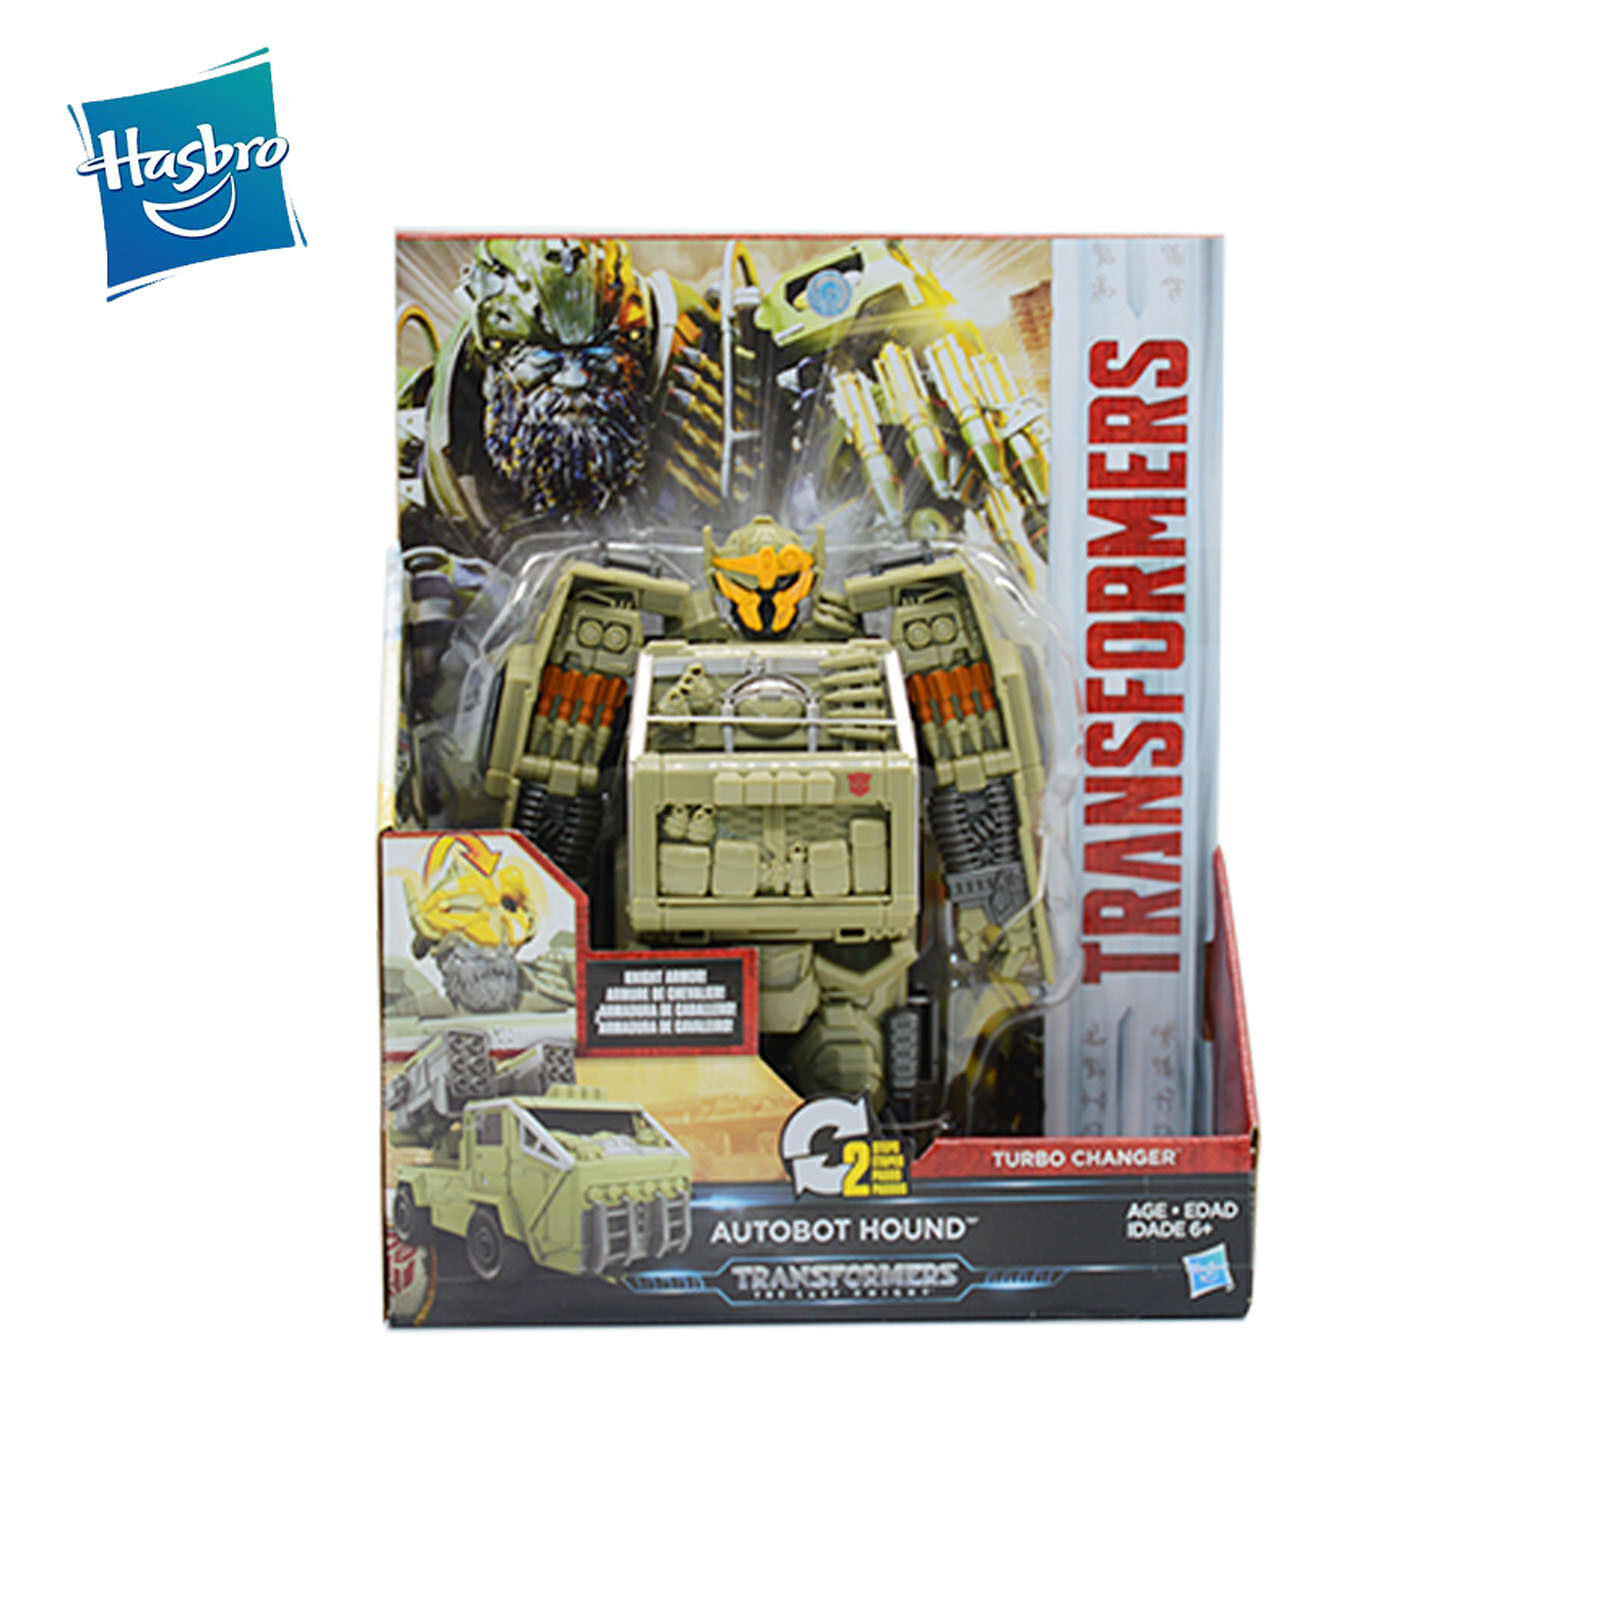 Transformers Transformers Transformers Movie 5 The Last Knight Turbo Changer AUTOBOT HOUND Collection New 323d67